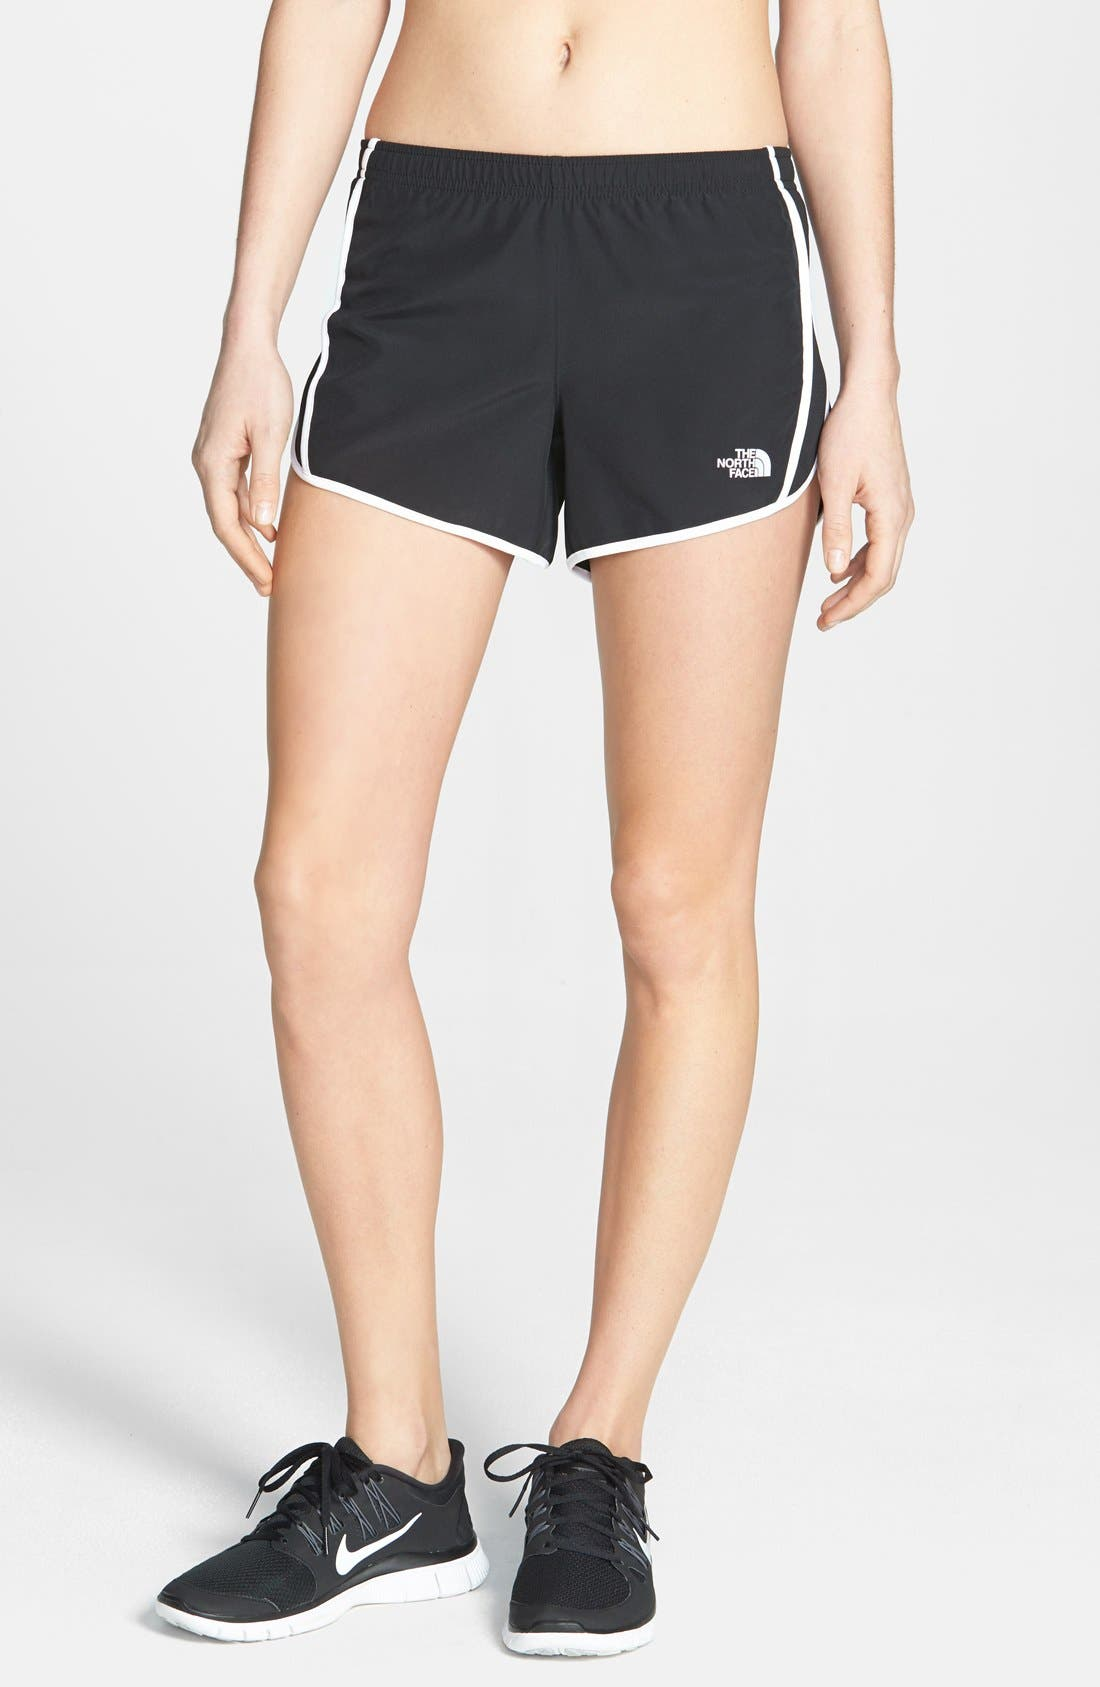 Alternate Image 1 Selected - The North Face 'GTD' Running Shorts